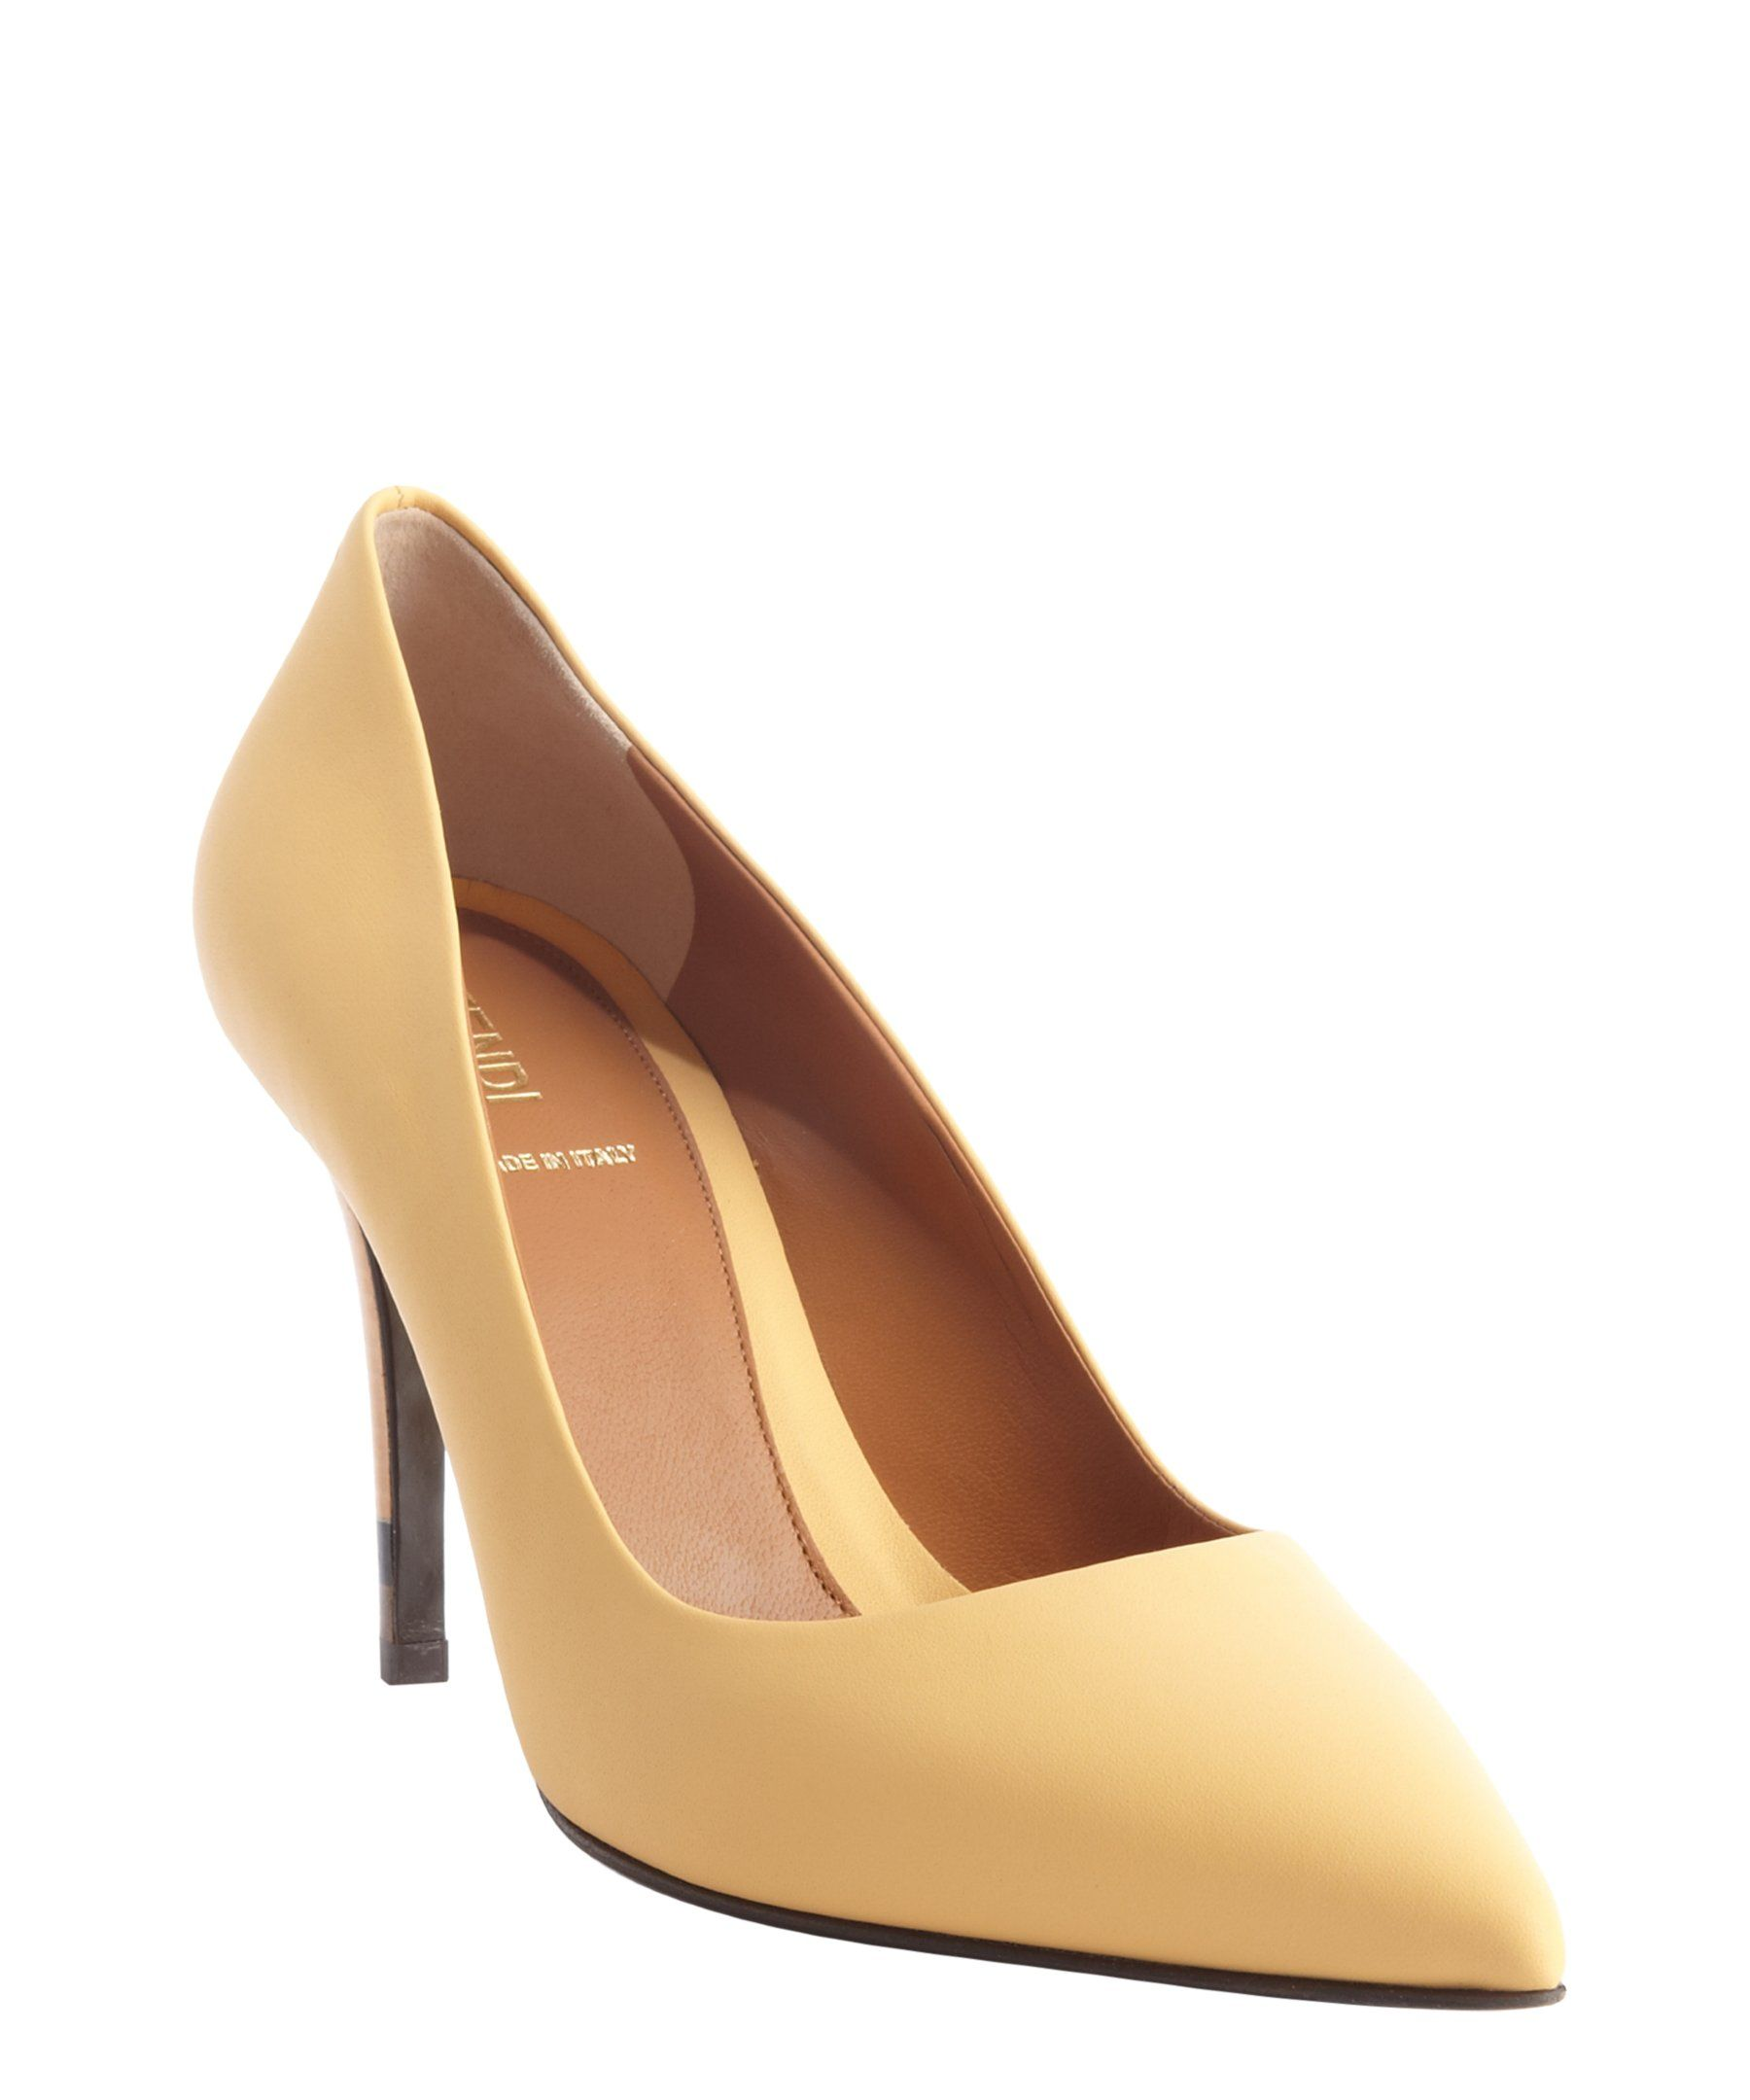 Fendi yellow matte leather pointed toe pumps | BLUEFLY up to 70% off designer brands